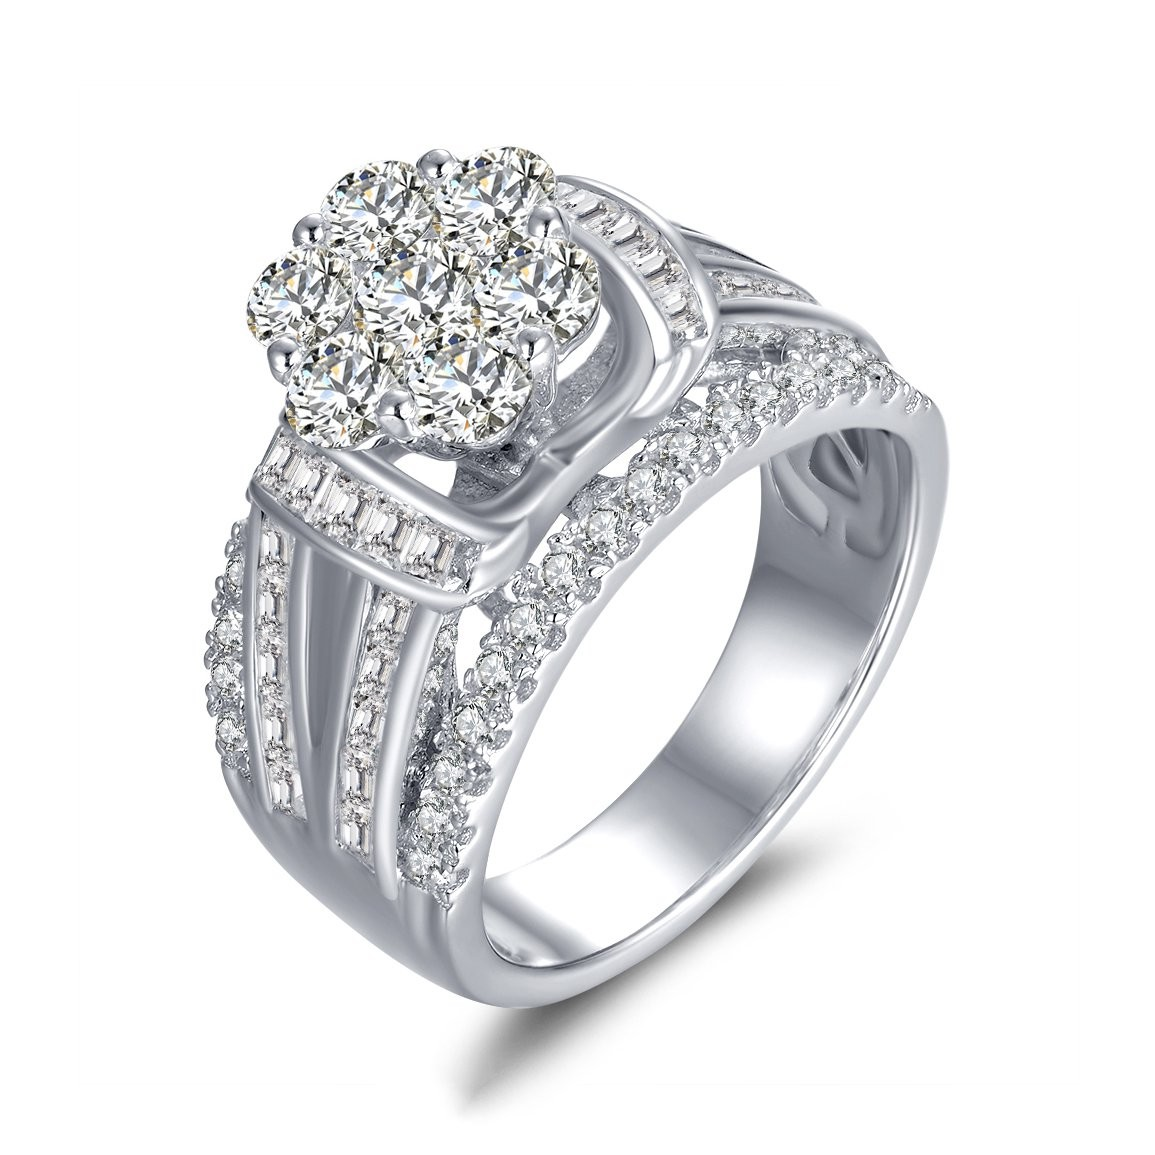 Examplary Women Make Payments Round Cut Flower Sapphire Silver Engagement Engagement Buy Cheap Engagement Rings Online Lajerrio Jewelry Diamond Rings Women Jared Diamond Rings wedding rings Diamond Rings For Women